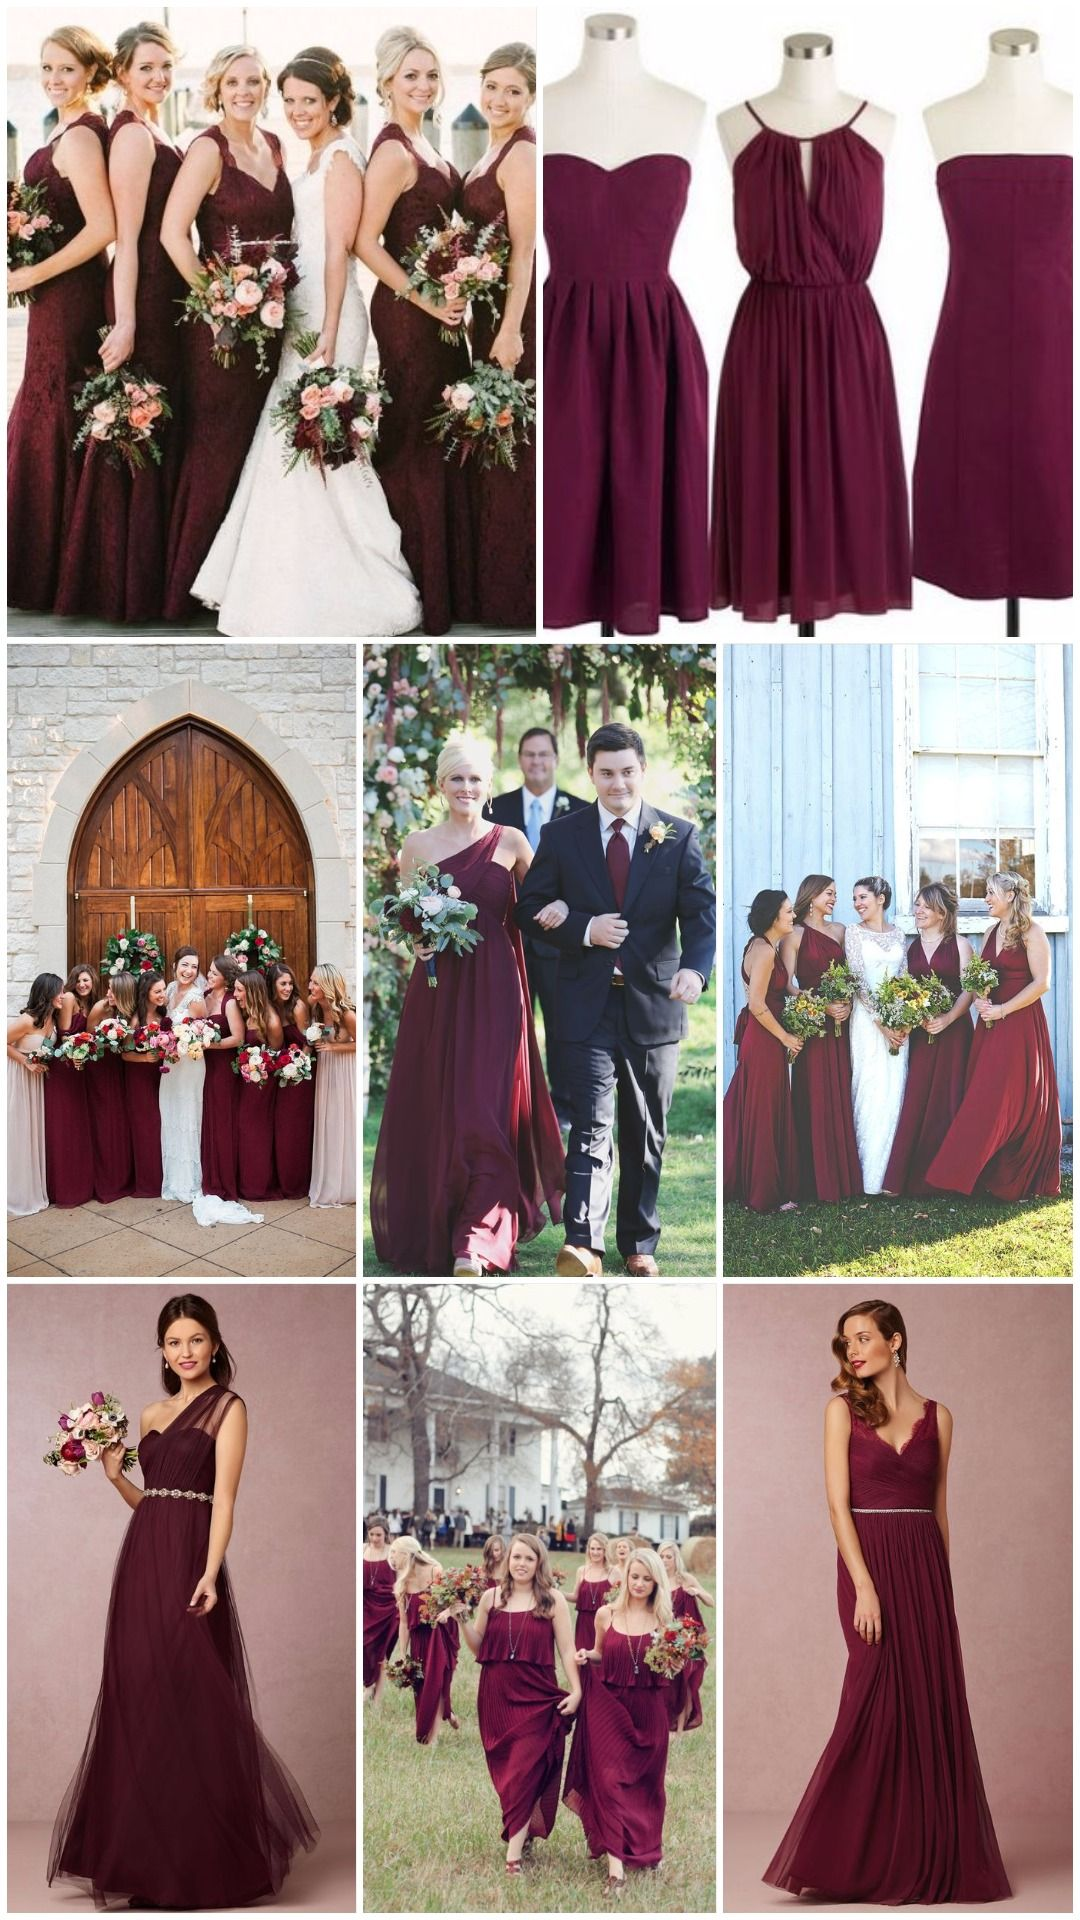 Burgundymarsalacabernet bridesmaid dresses autumn magic burgundymarsalacabernet bridesmaid dresses ombrellifo Image collections